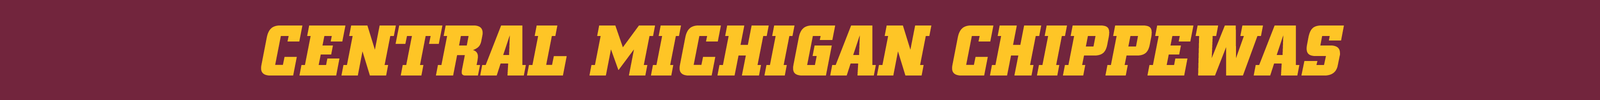 Central Michigan